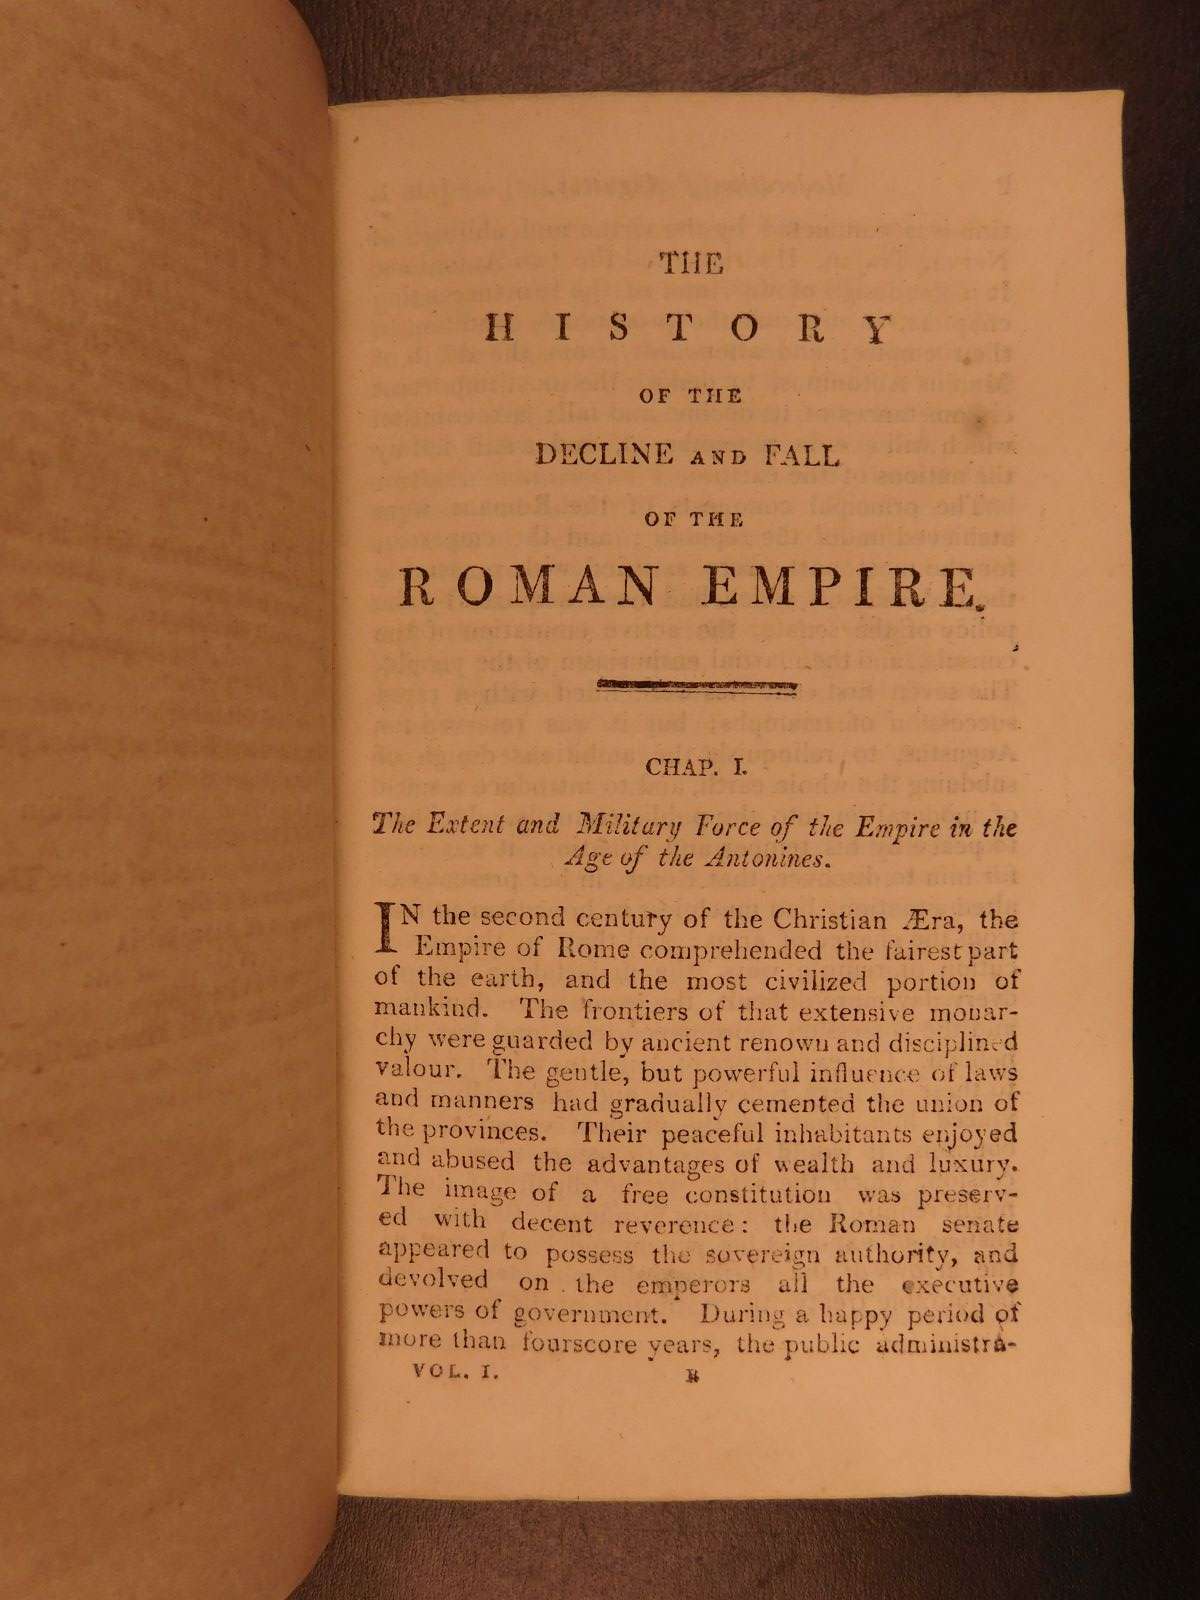 a description of the history of the decline and fall of the roman empire The decline and fall of the roman empire audiobook cover art  examining a  period of world (european) history (late antiquity throughout the middle ages)   after an overview of the time it begins in depth with emperor commodus and  goes.